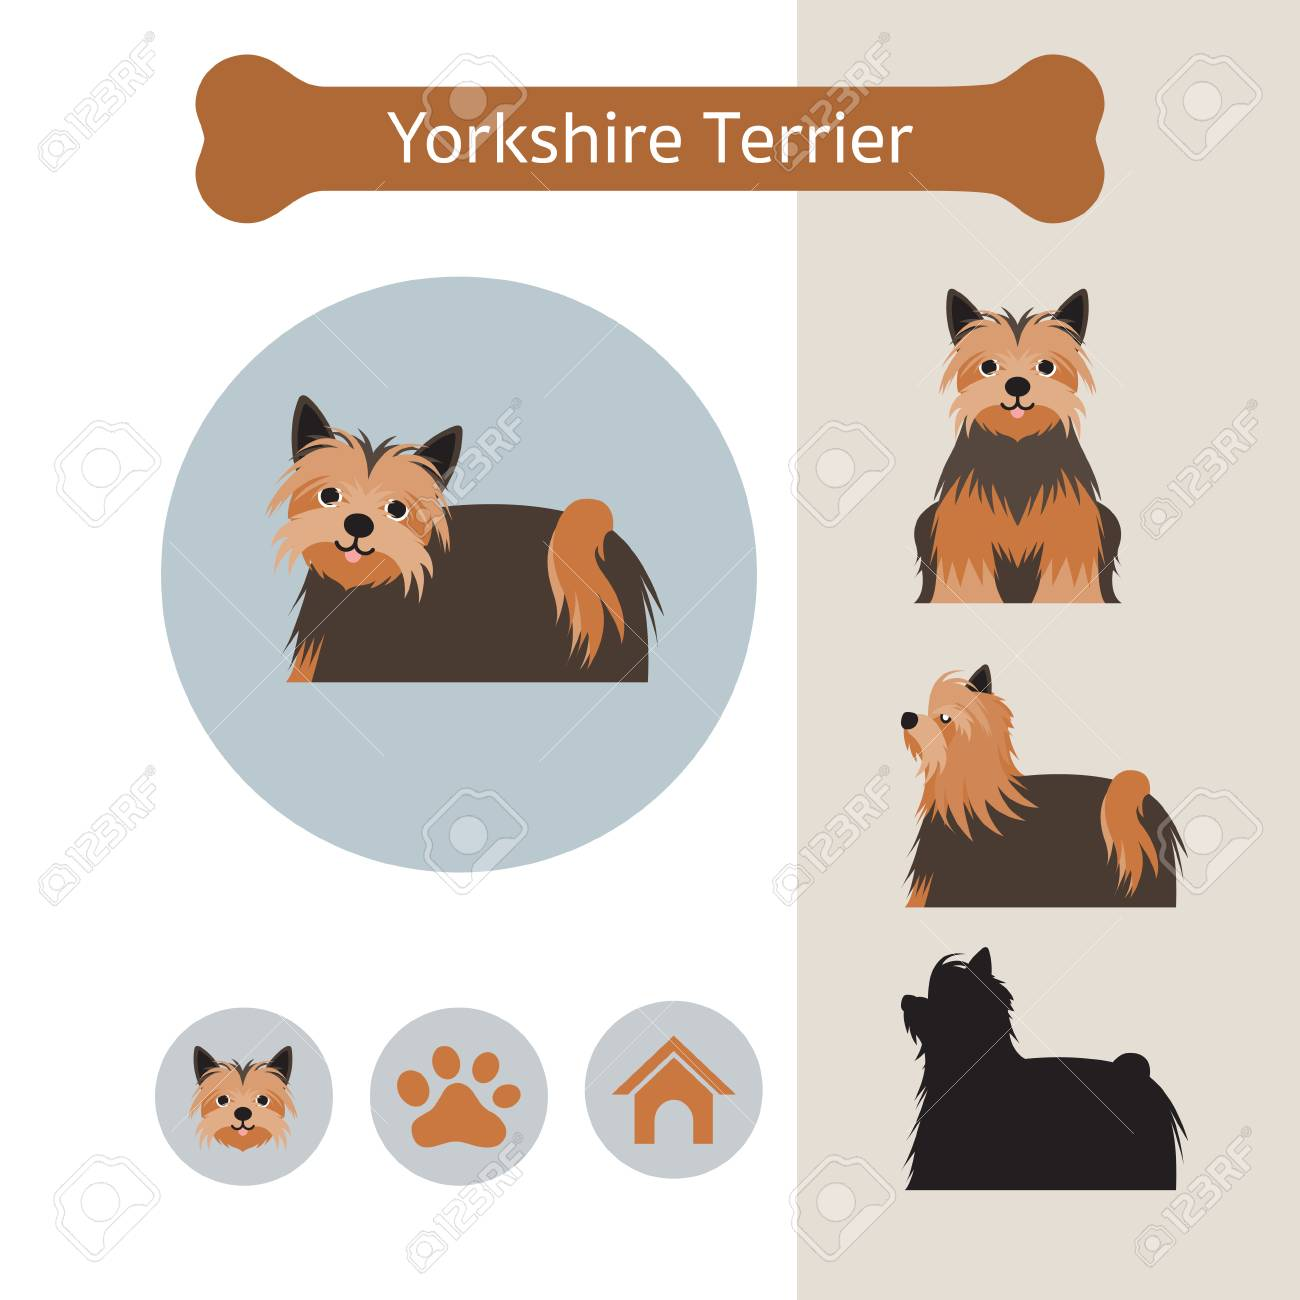 Yorkshire Terrier Dog Breed Infographic Illustration Front